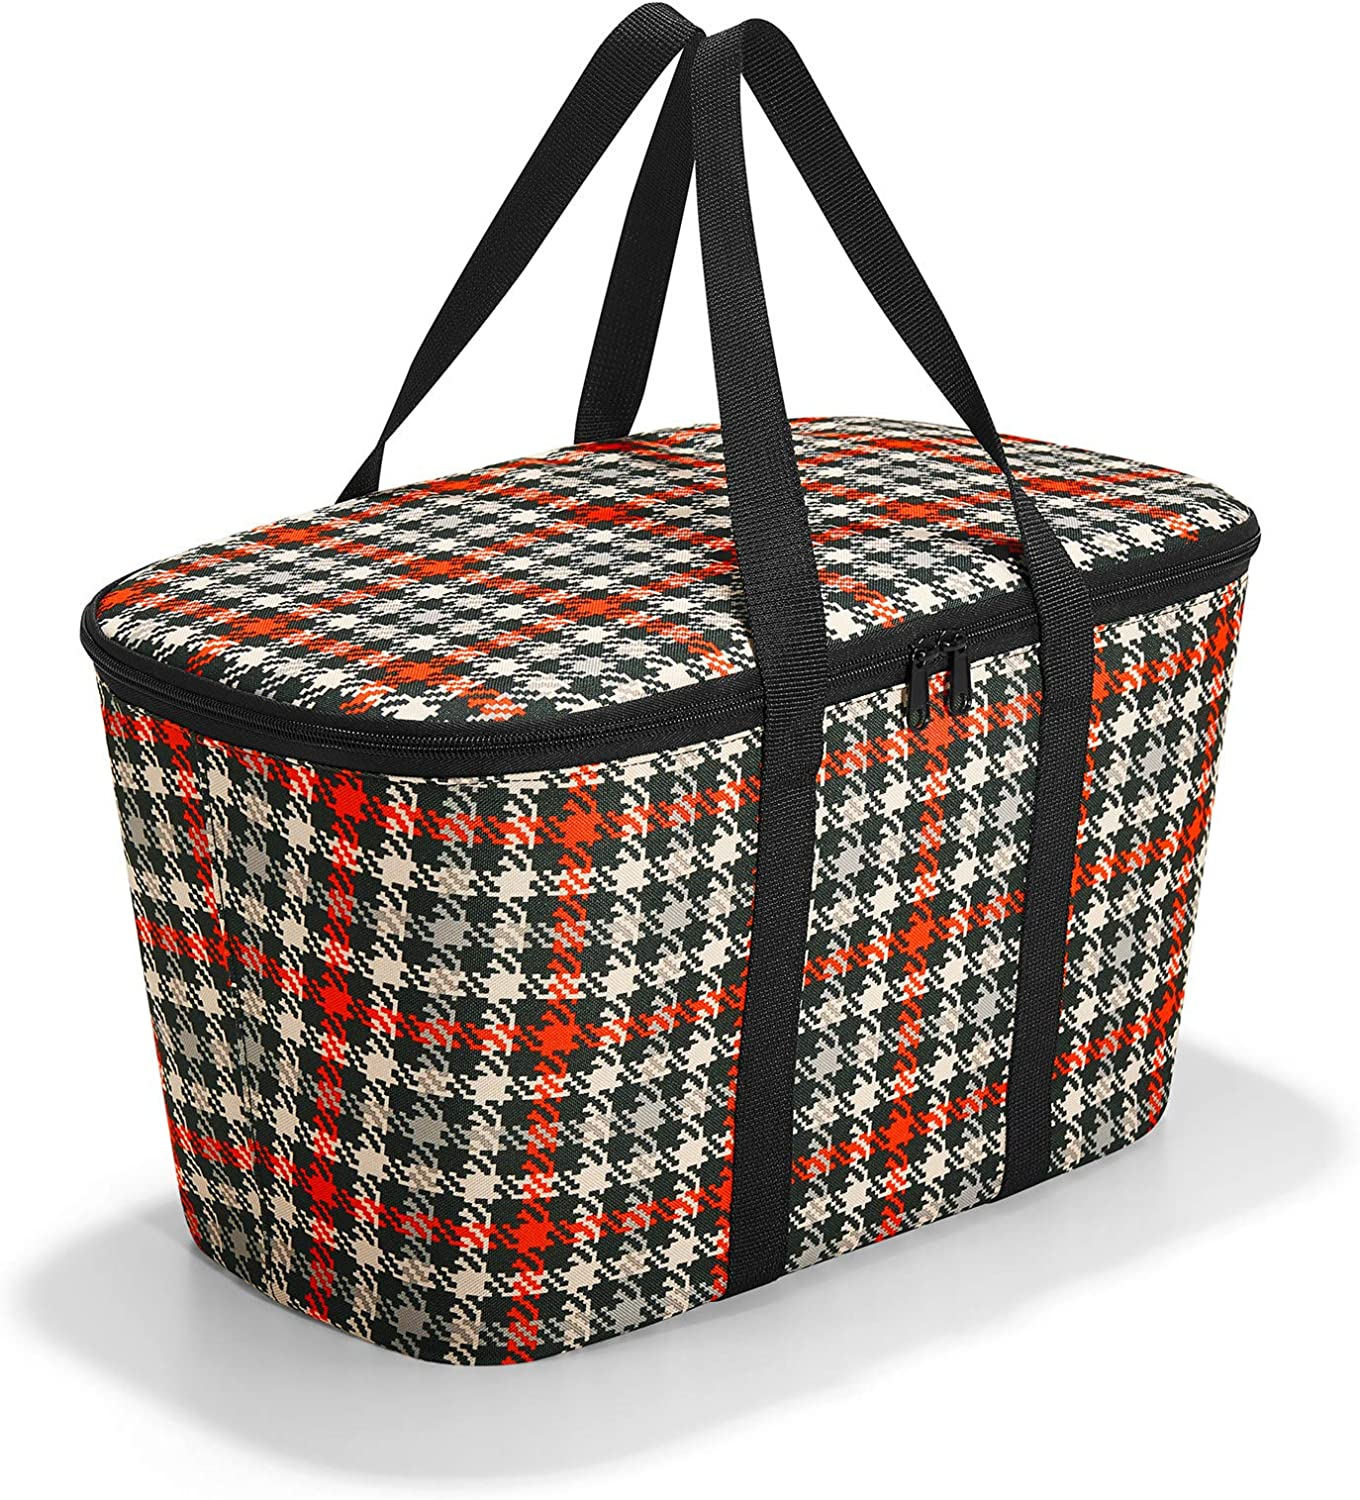 reisenthel coolerbag glencheck red Gym Tote 44 Centimeters 20 Multicolour (Glencheck Red)